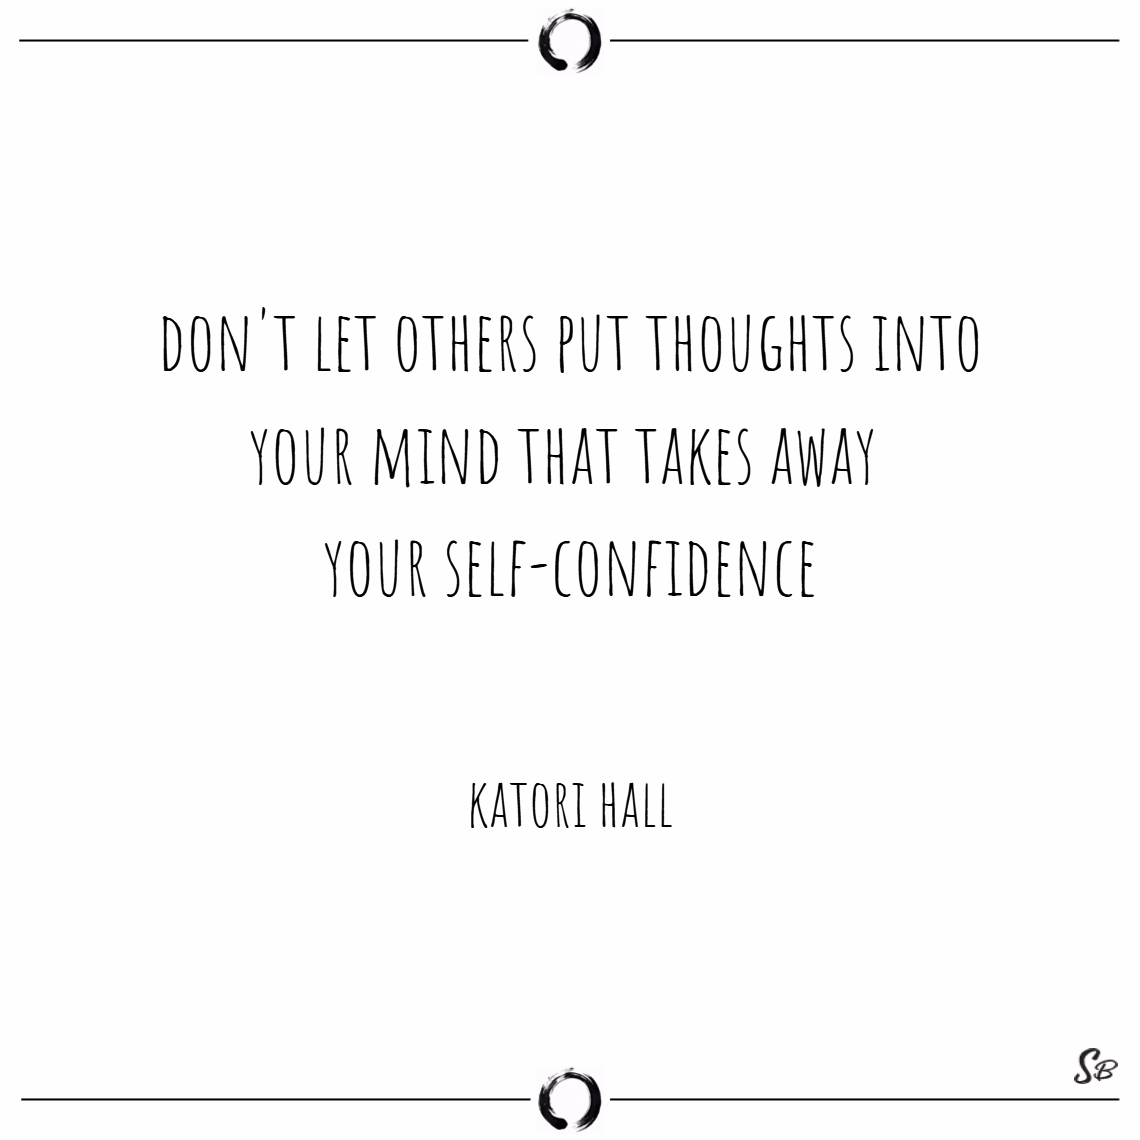 Don't let others put thoughts into your mind that takes away your self confidence. – katori hall